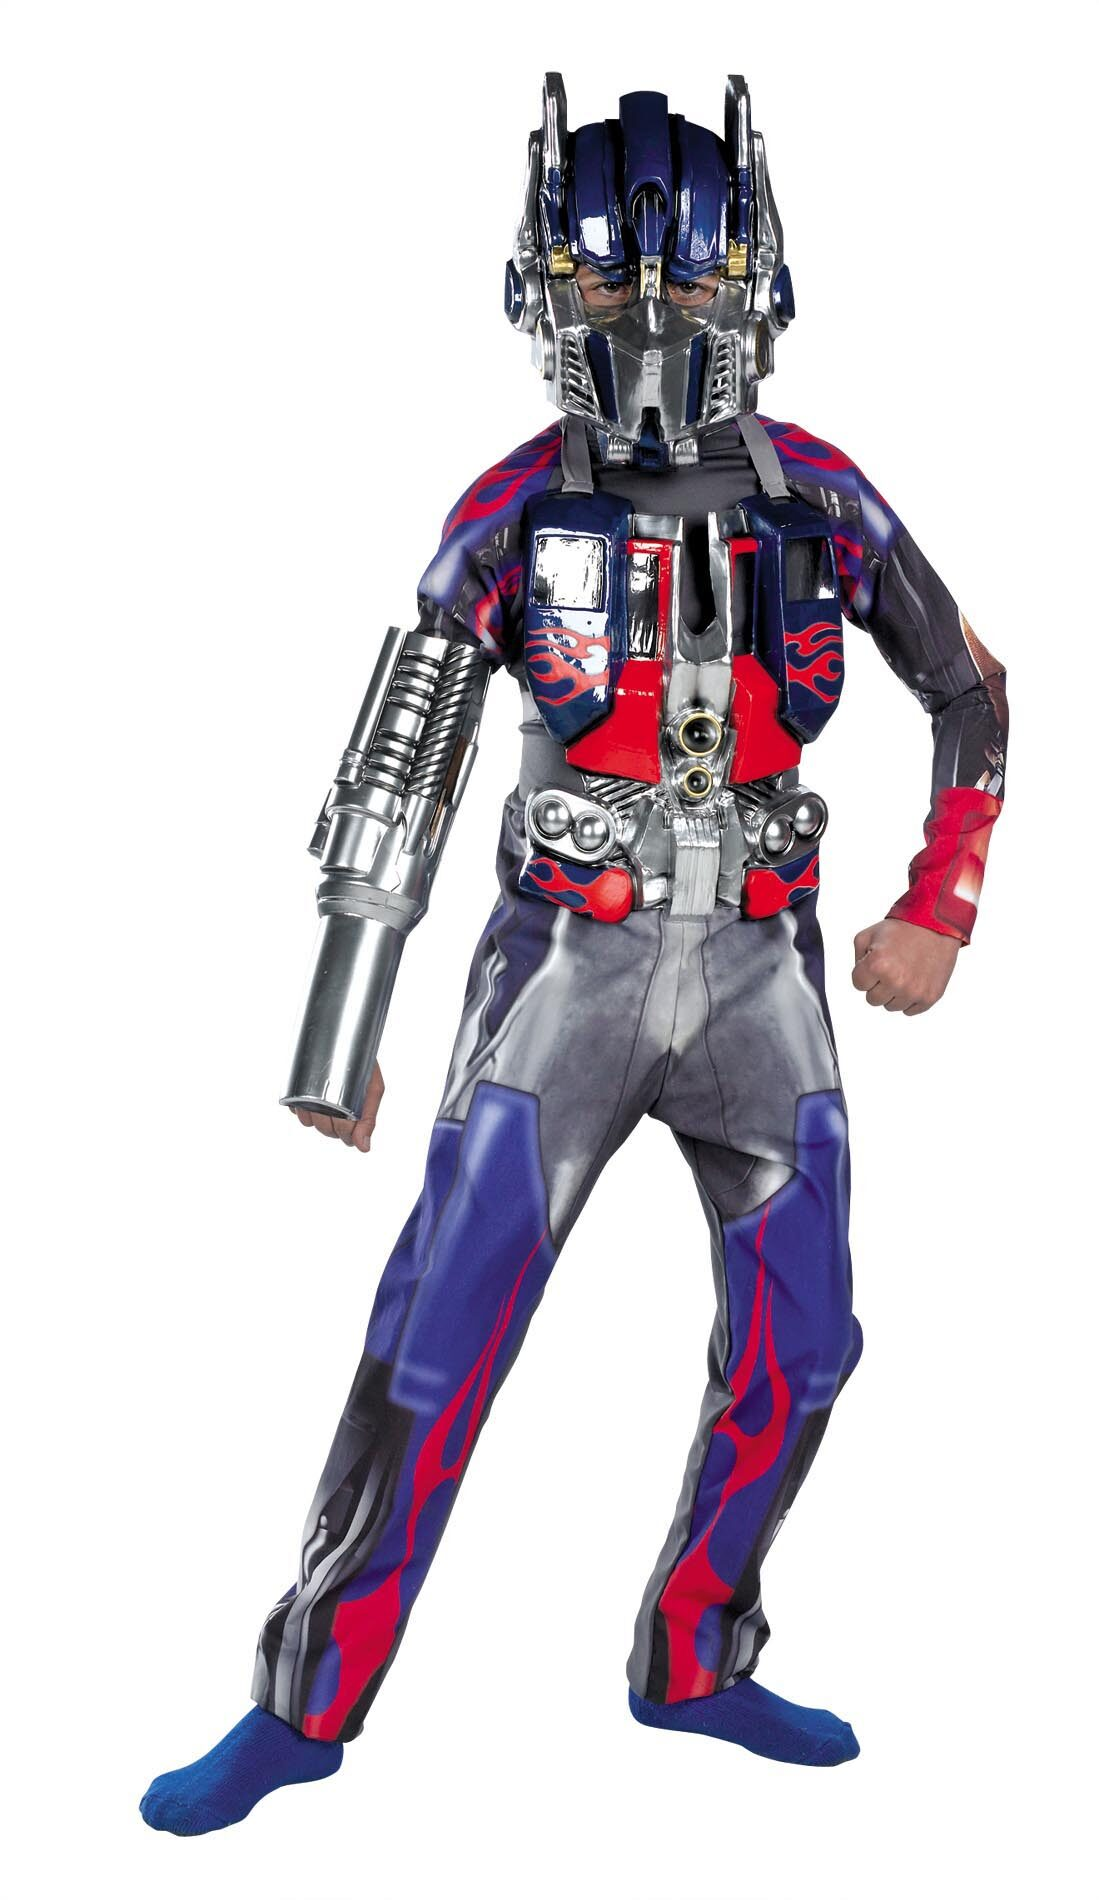 Transformers Costumes - Mr. Costumes